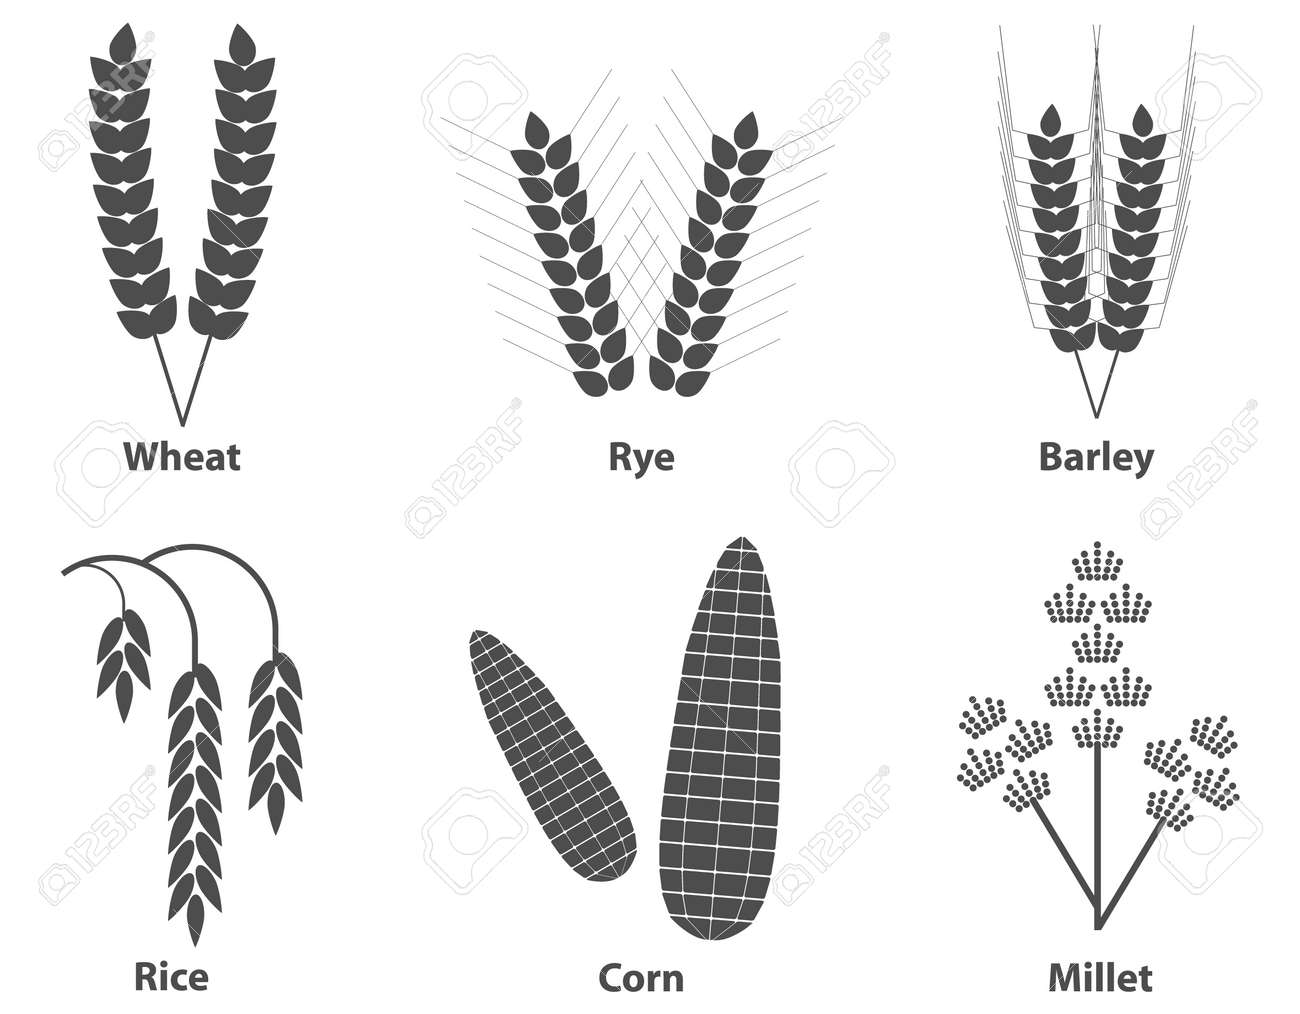 Ears of grain in black and white colors isolated on a light background. Vector illustration. Vector. - 167578728